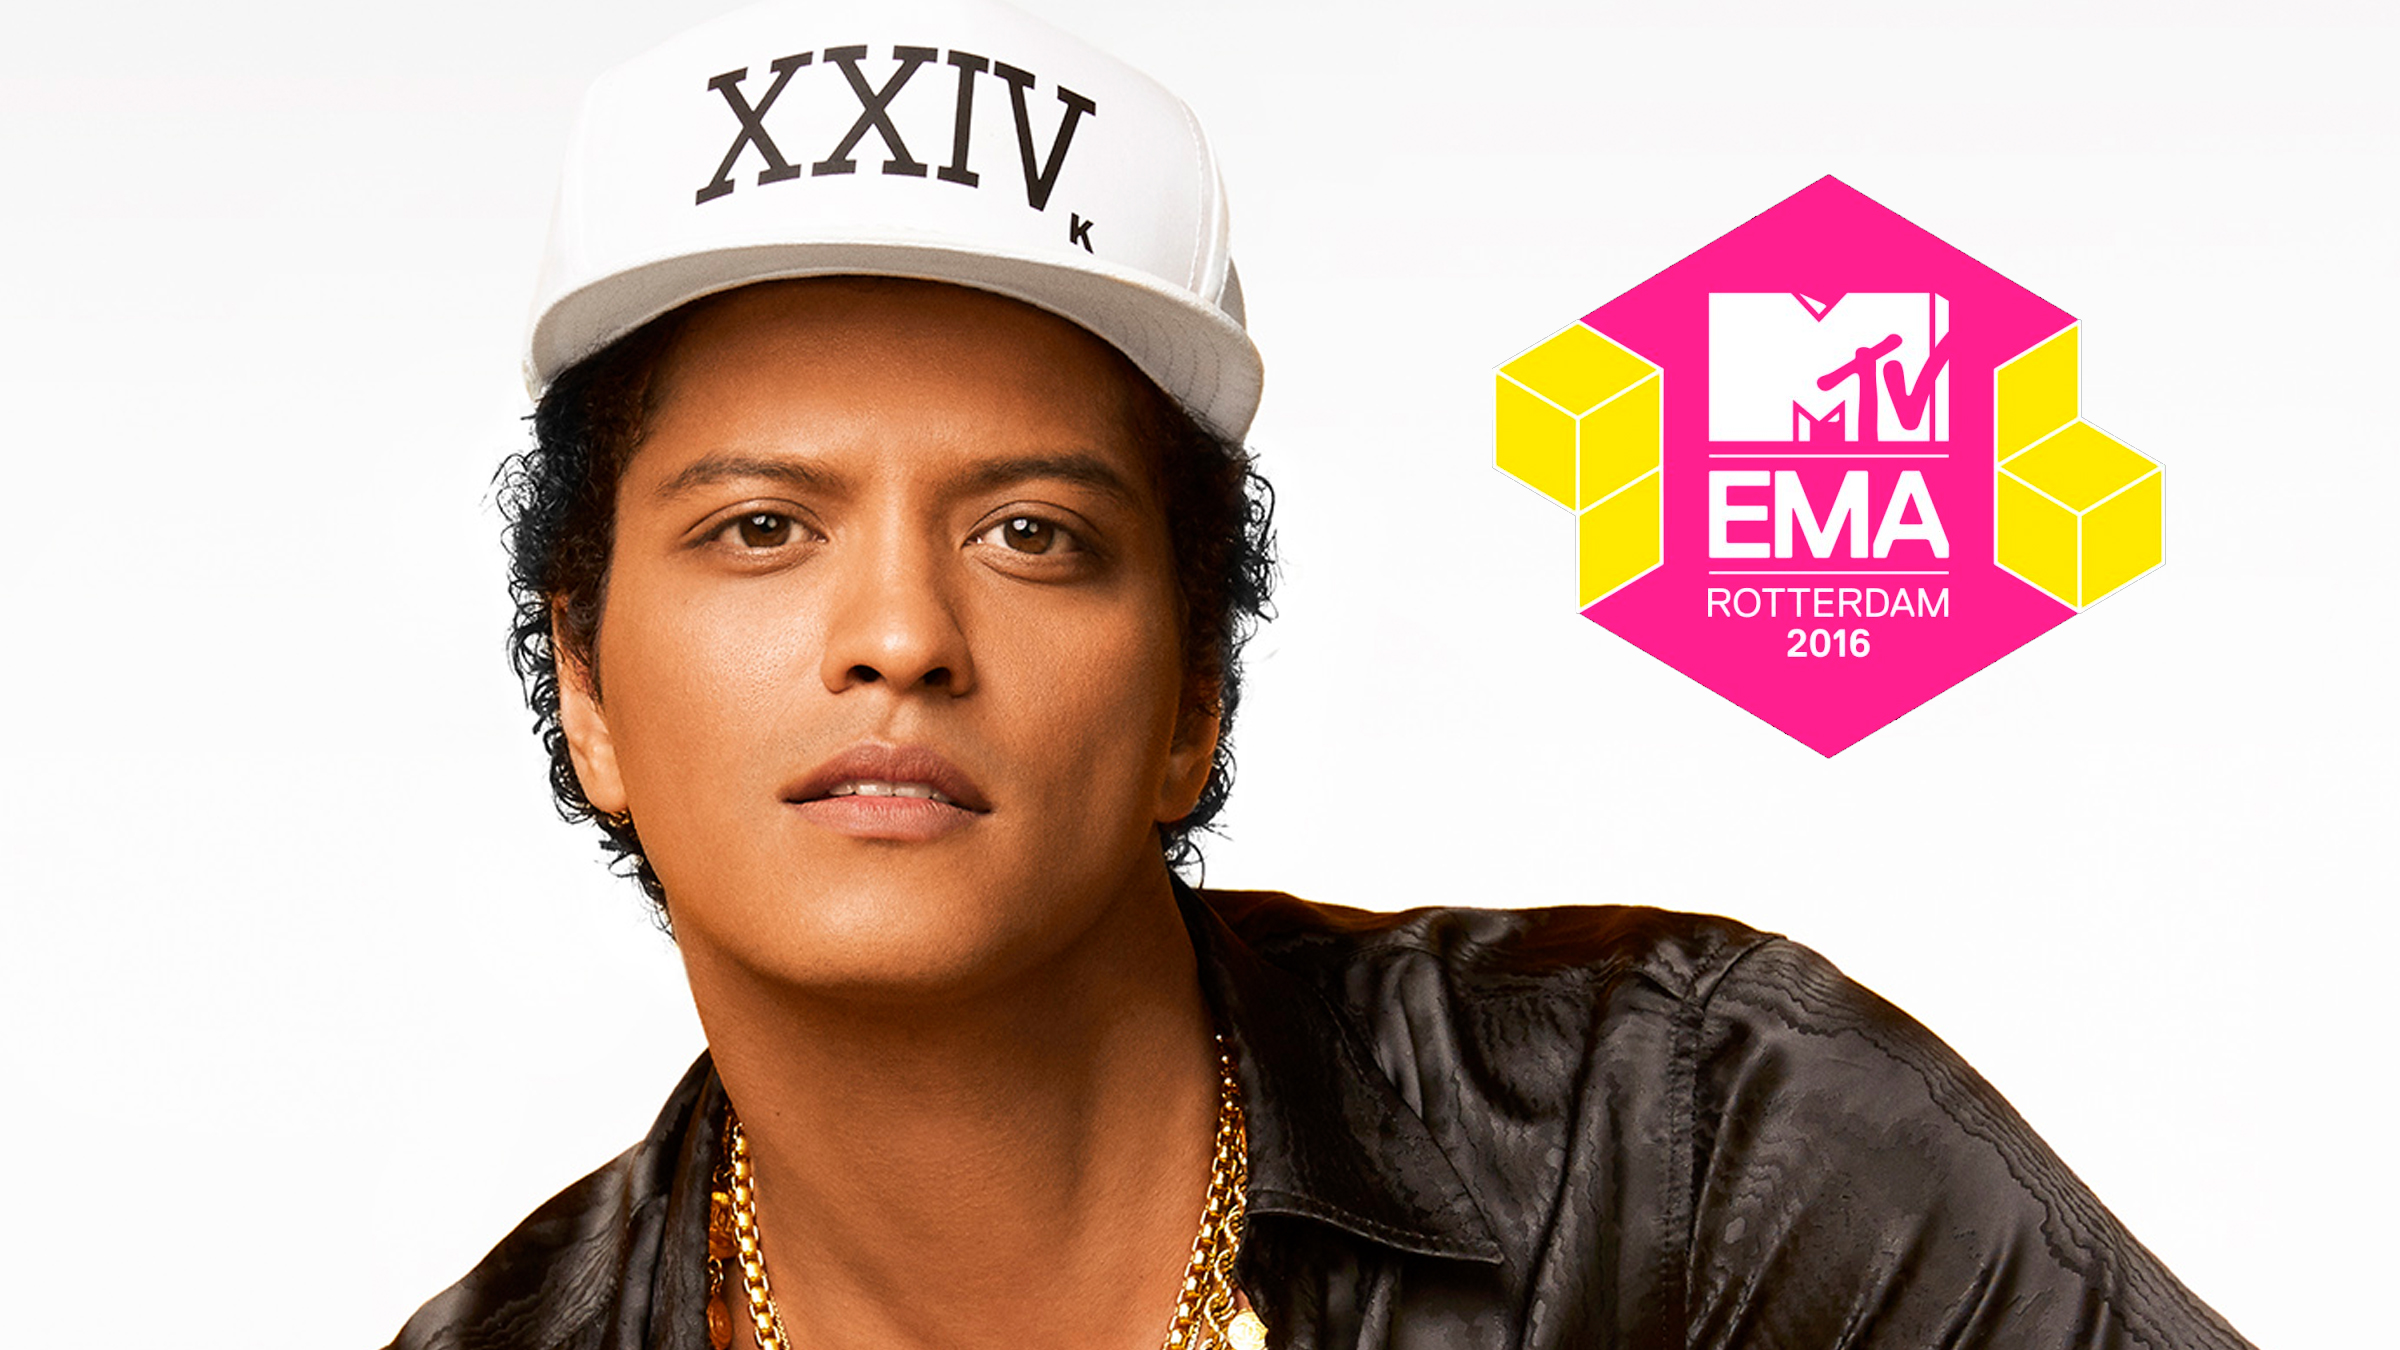 Bruno mtv teaser